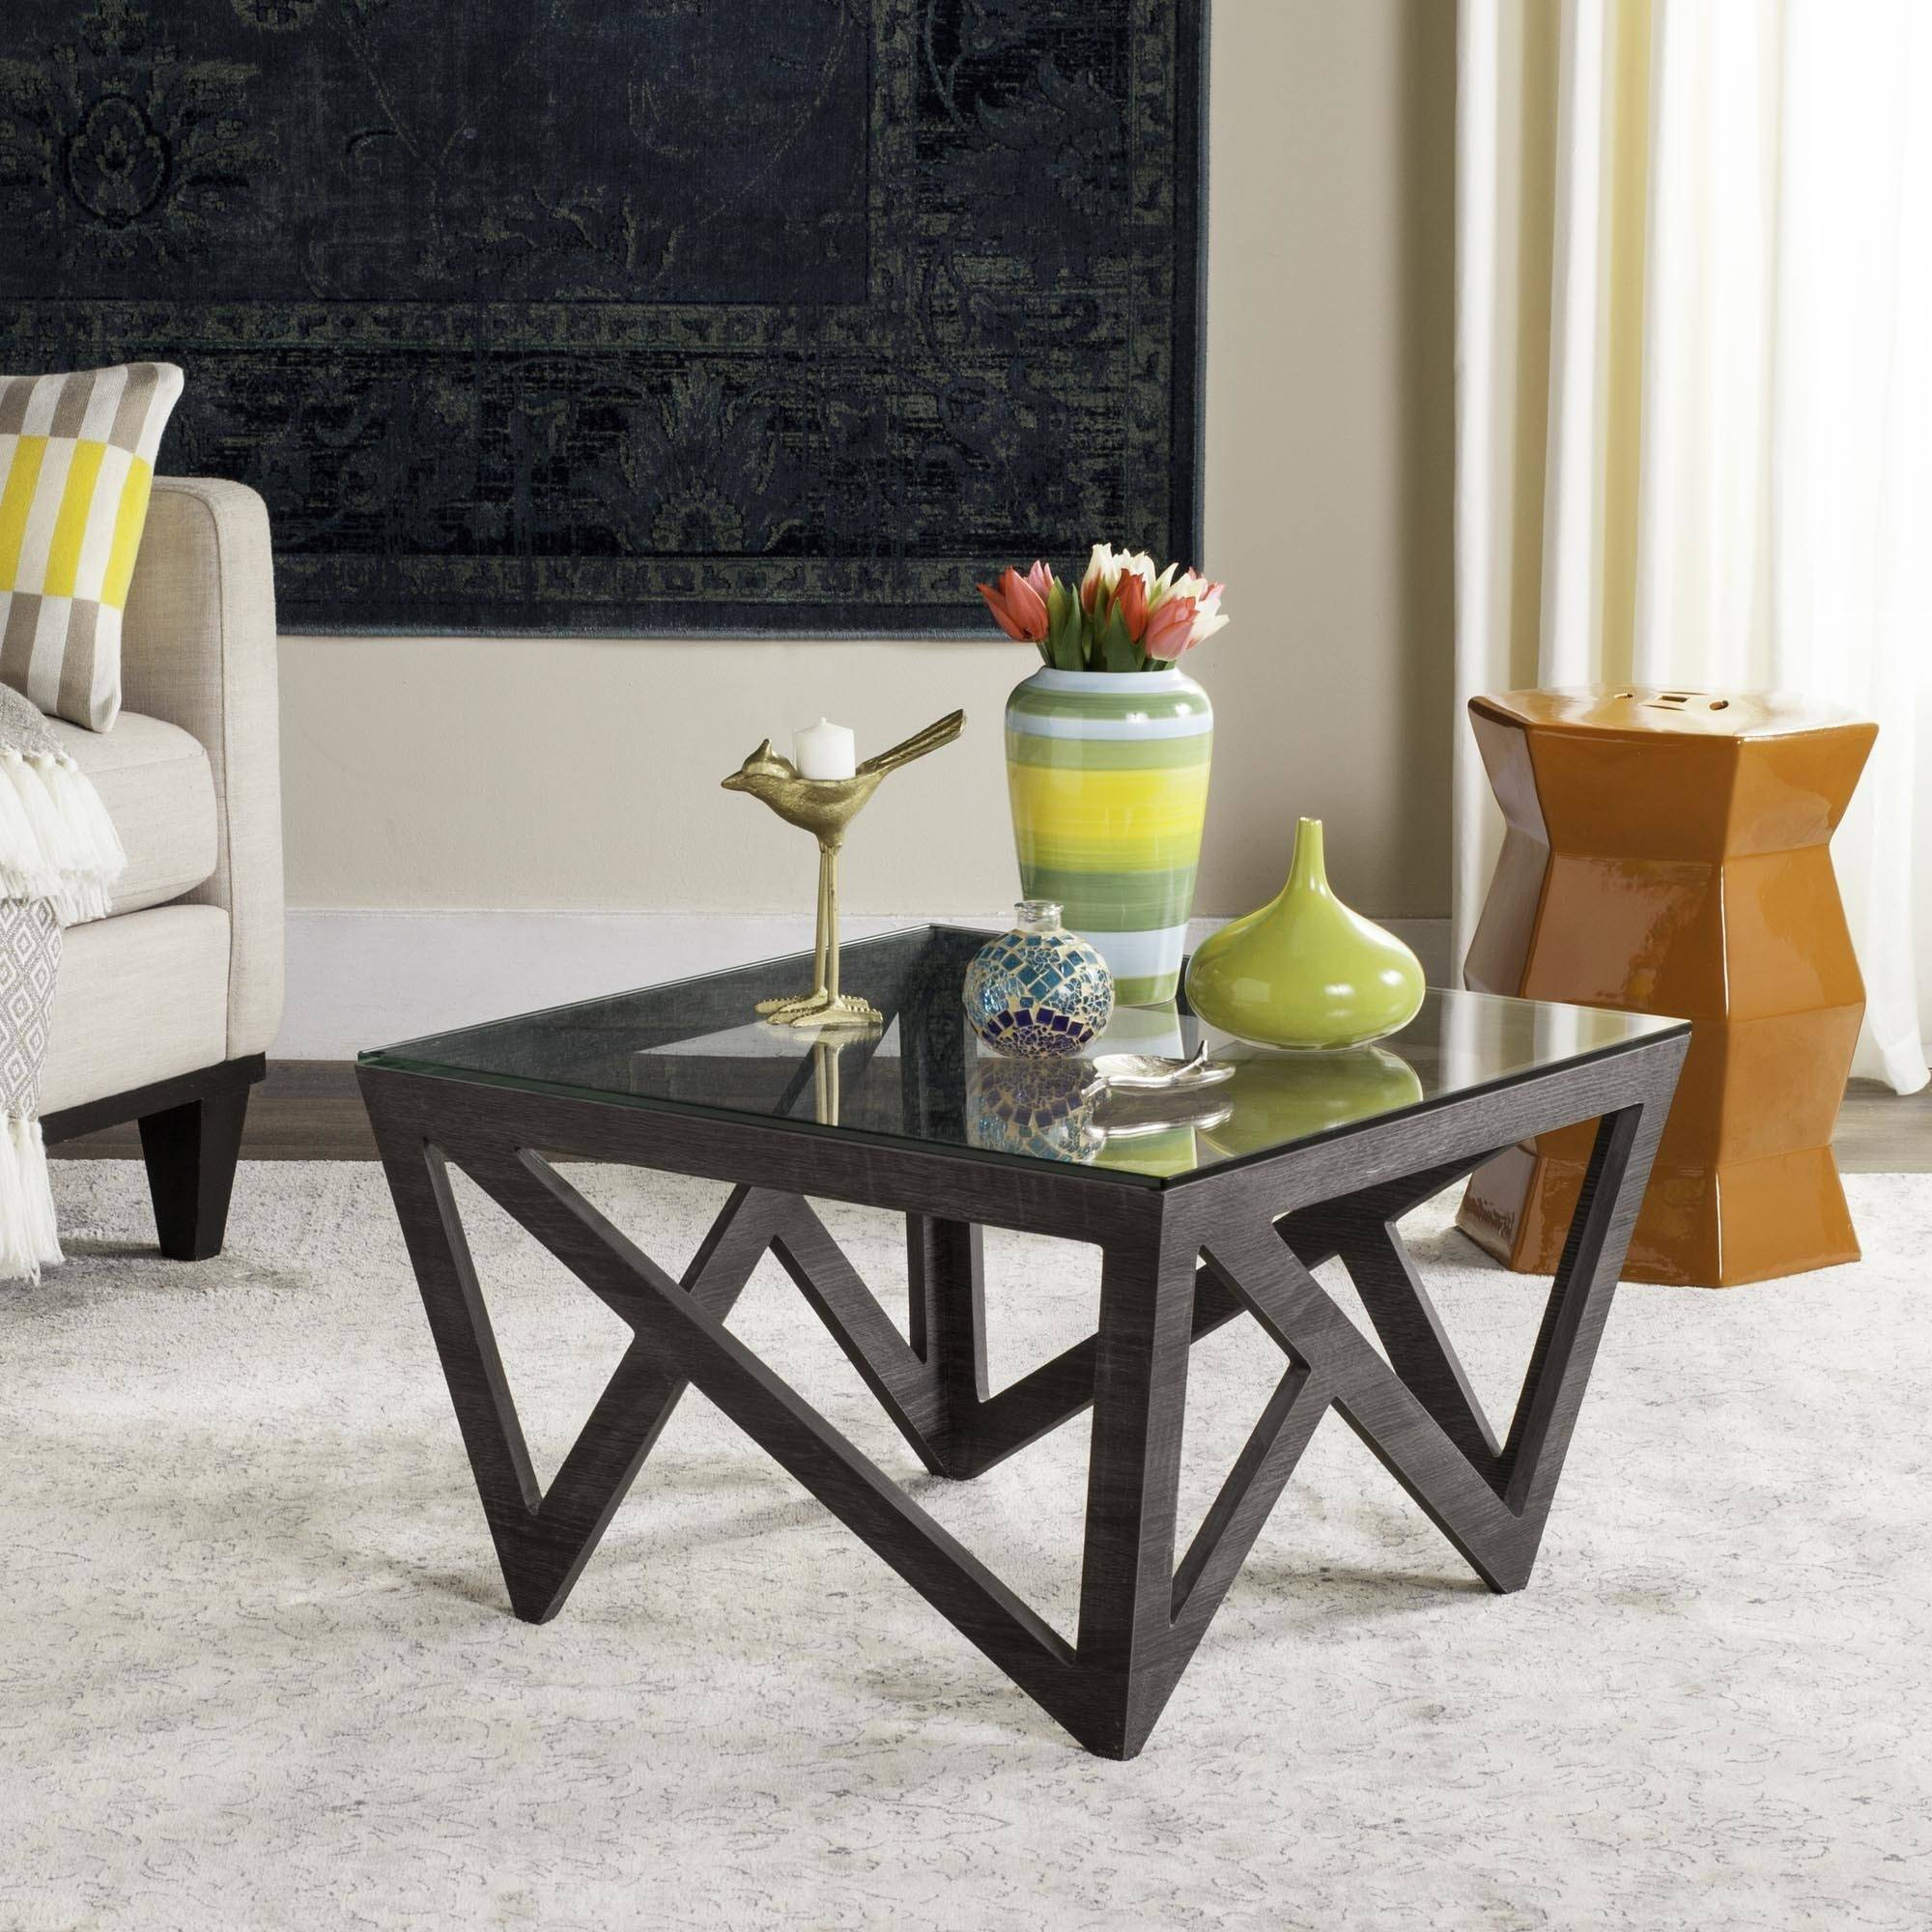 "Safavieh Radley 23"" Square Glass Top Mid Century Coffee Table, Dark Grey"